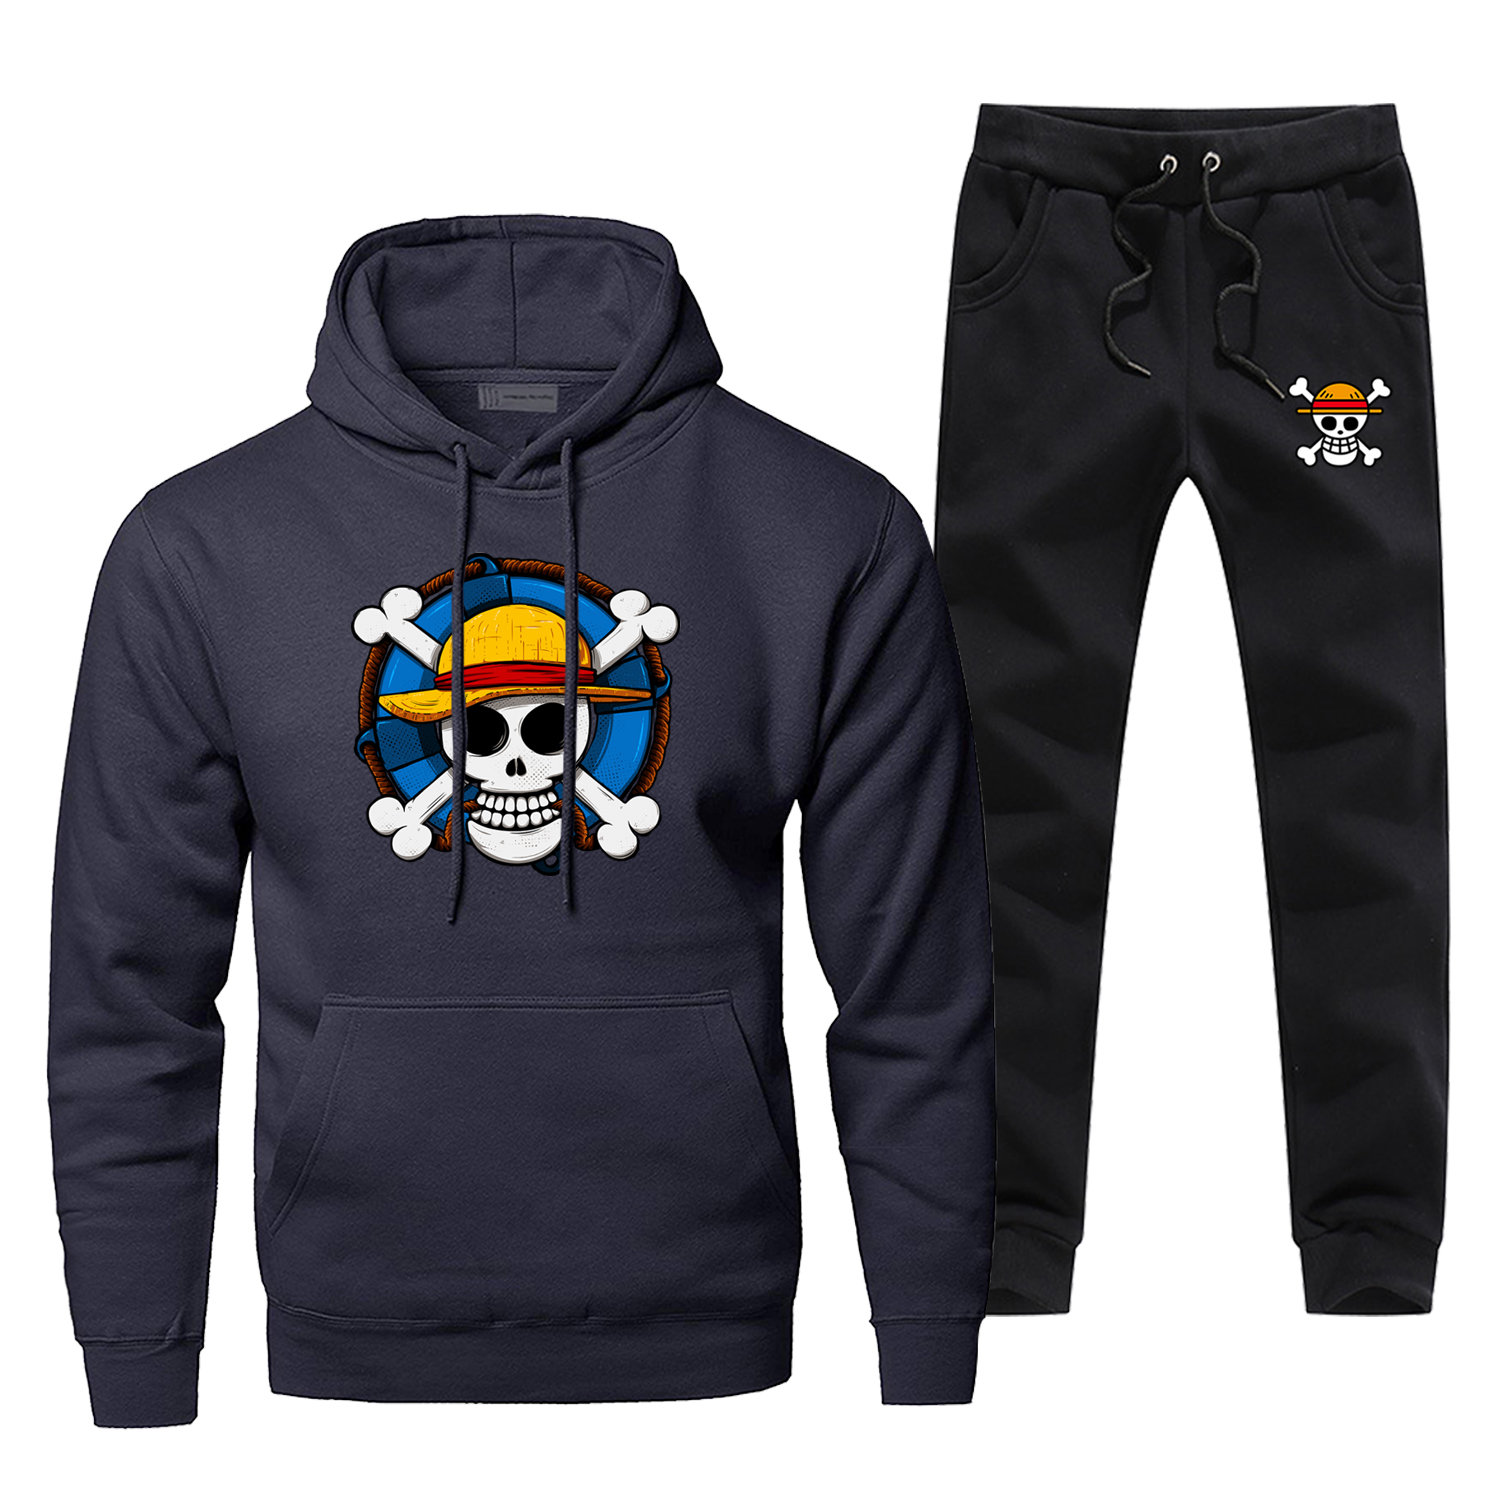 Japanese Anime One Piece Hoodie Men Hoodies+pants Sets Mens The Pirate King Luffy Sportswear Sweatshirt Winter Fleece Tracksuit